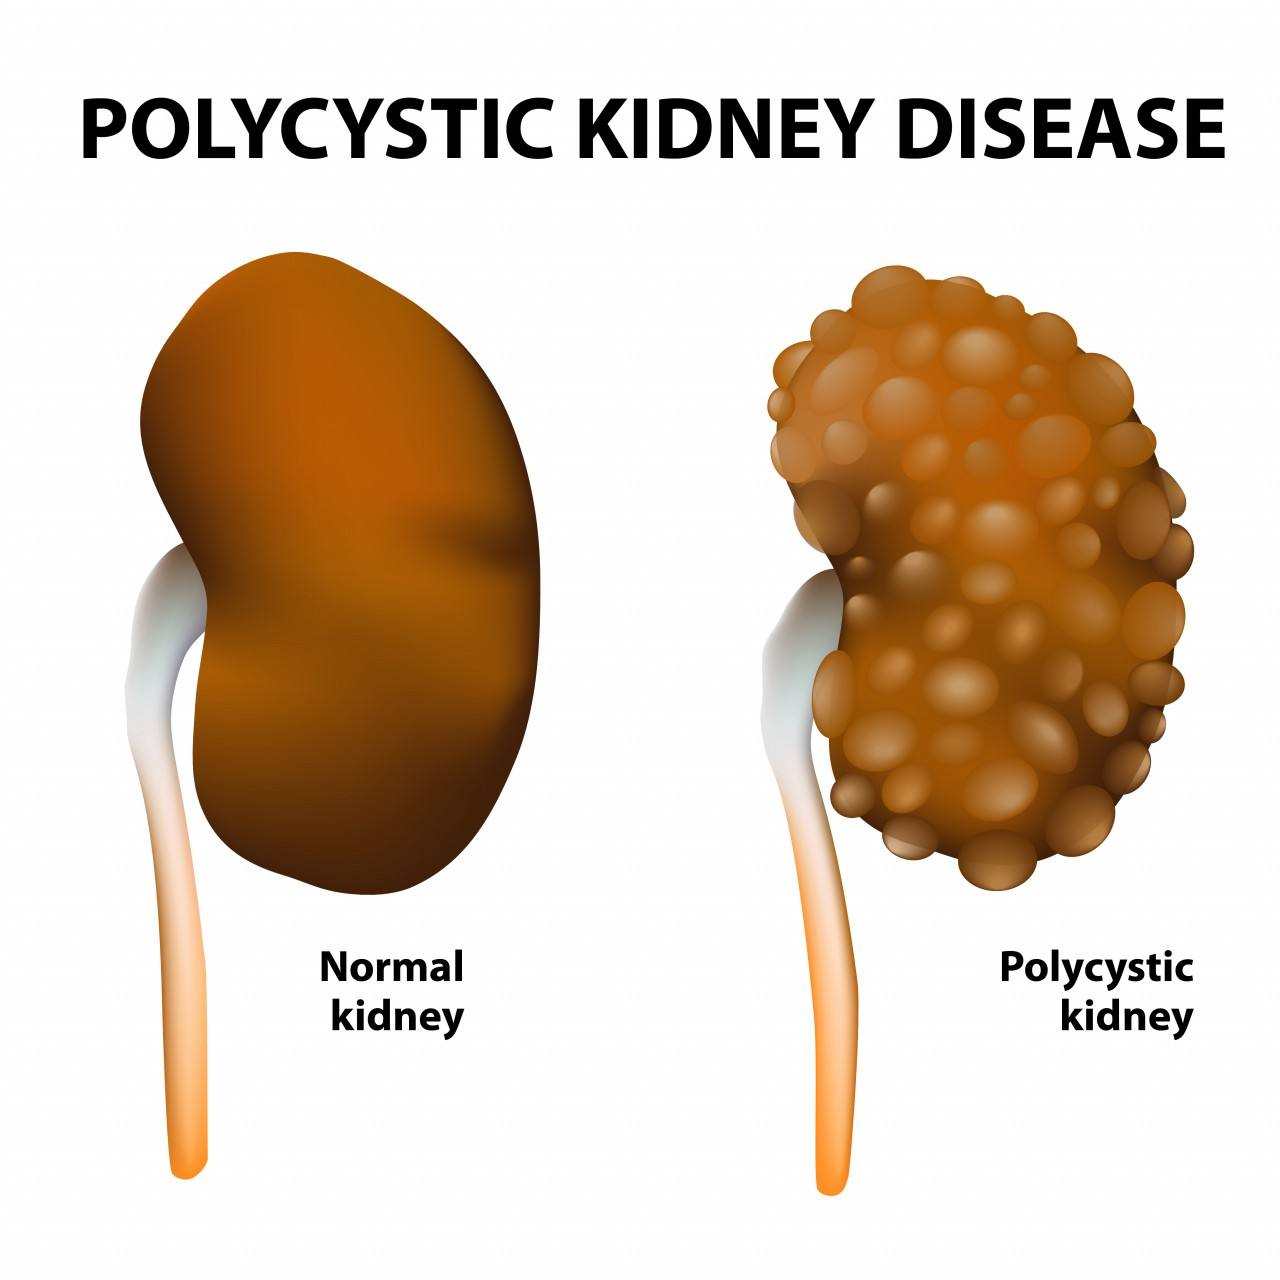 NICE Recommends Otsuka's Tolvaptan for Patients with a Chronic Kidney Disease